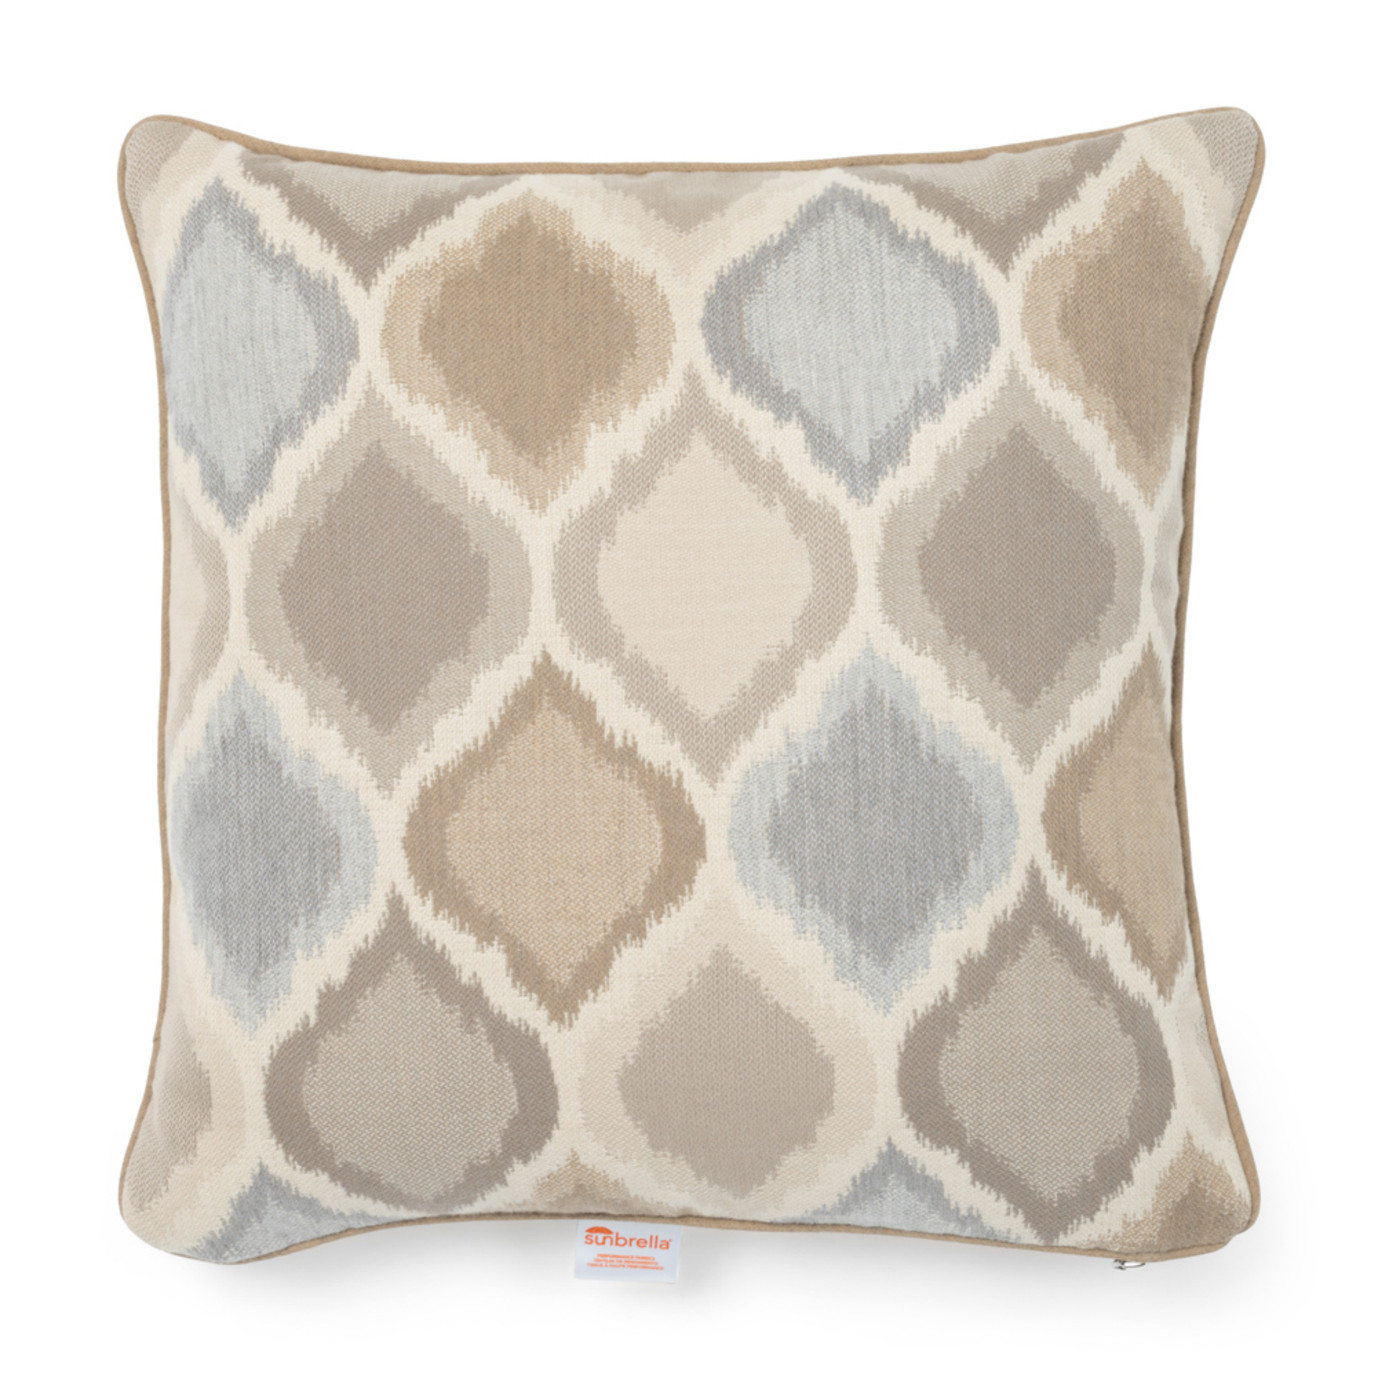 Portofino™ Comfort 16in Accent Pillow - Empire Dove